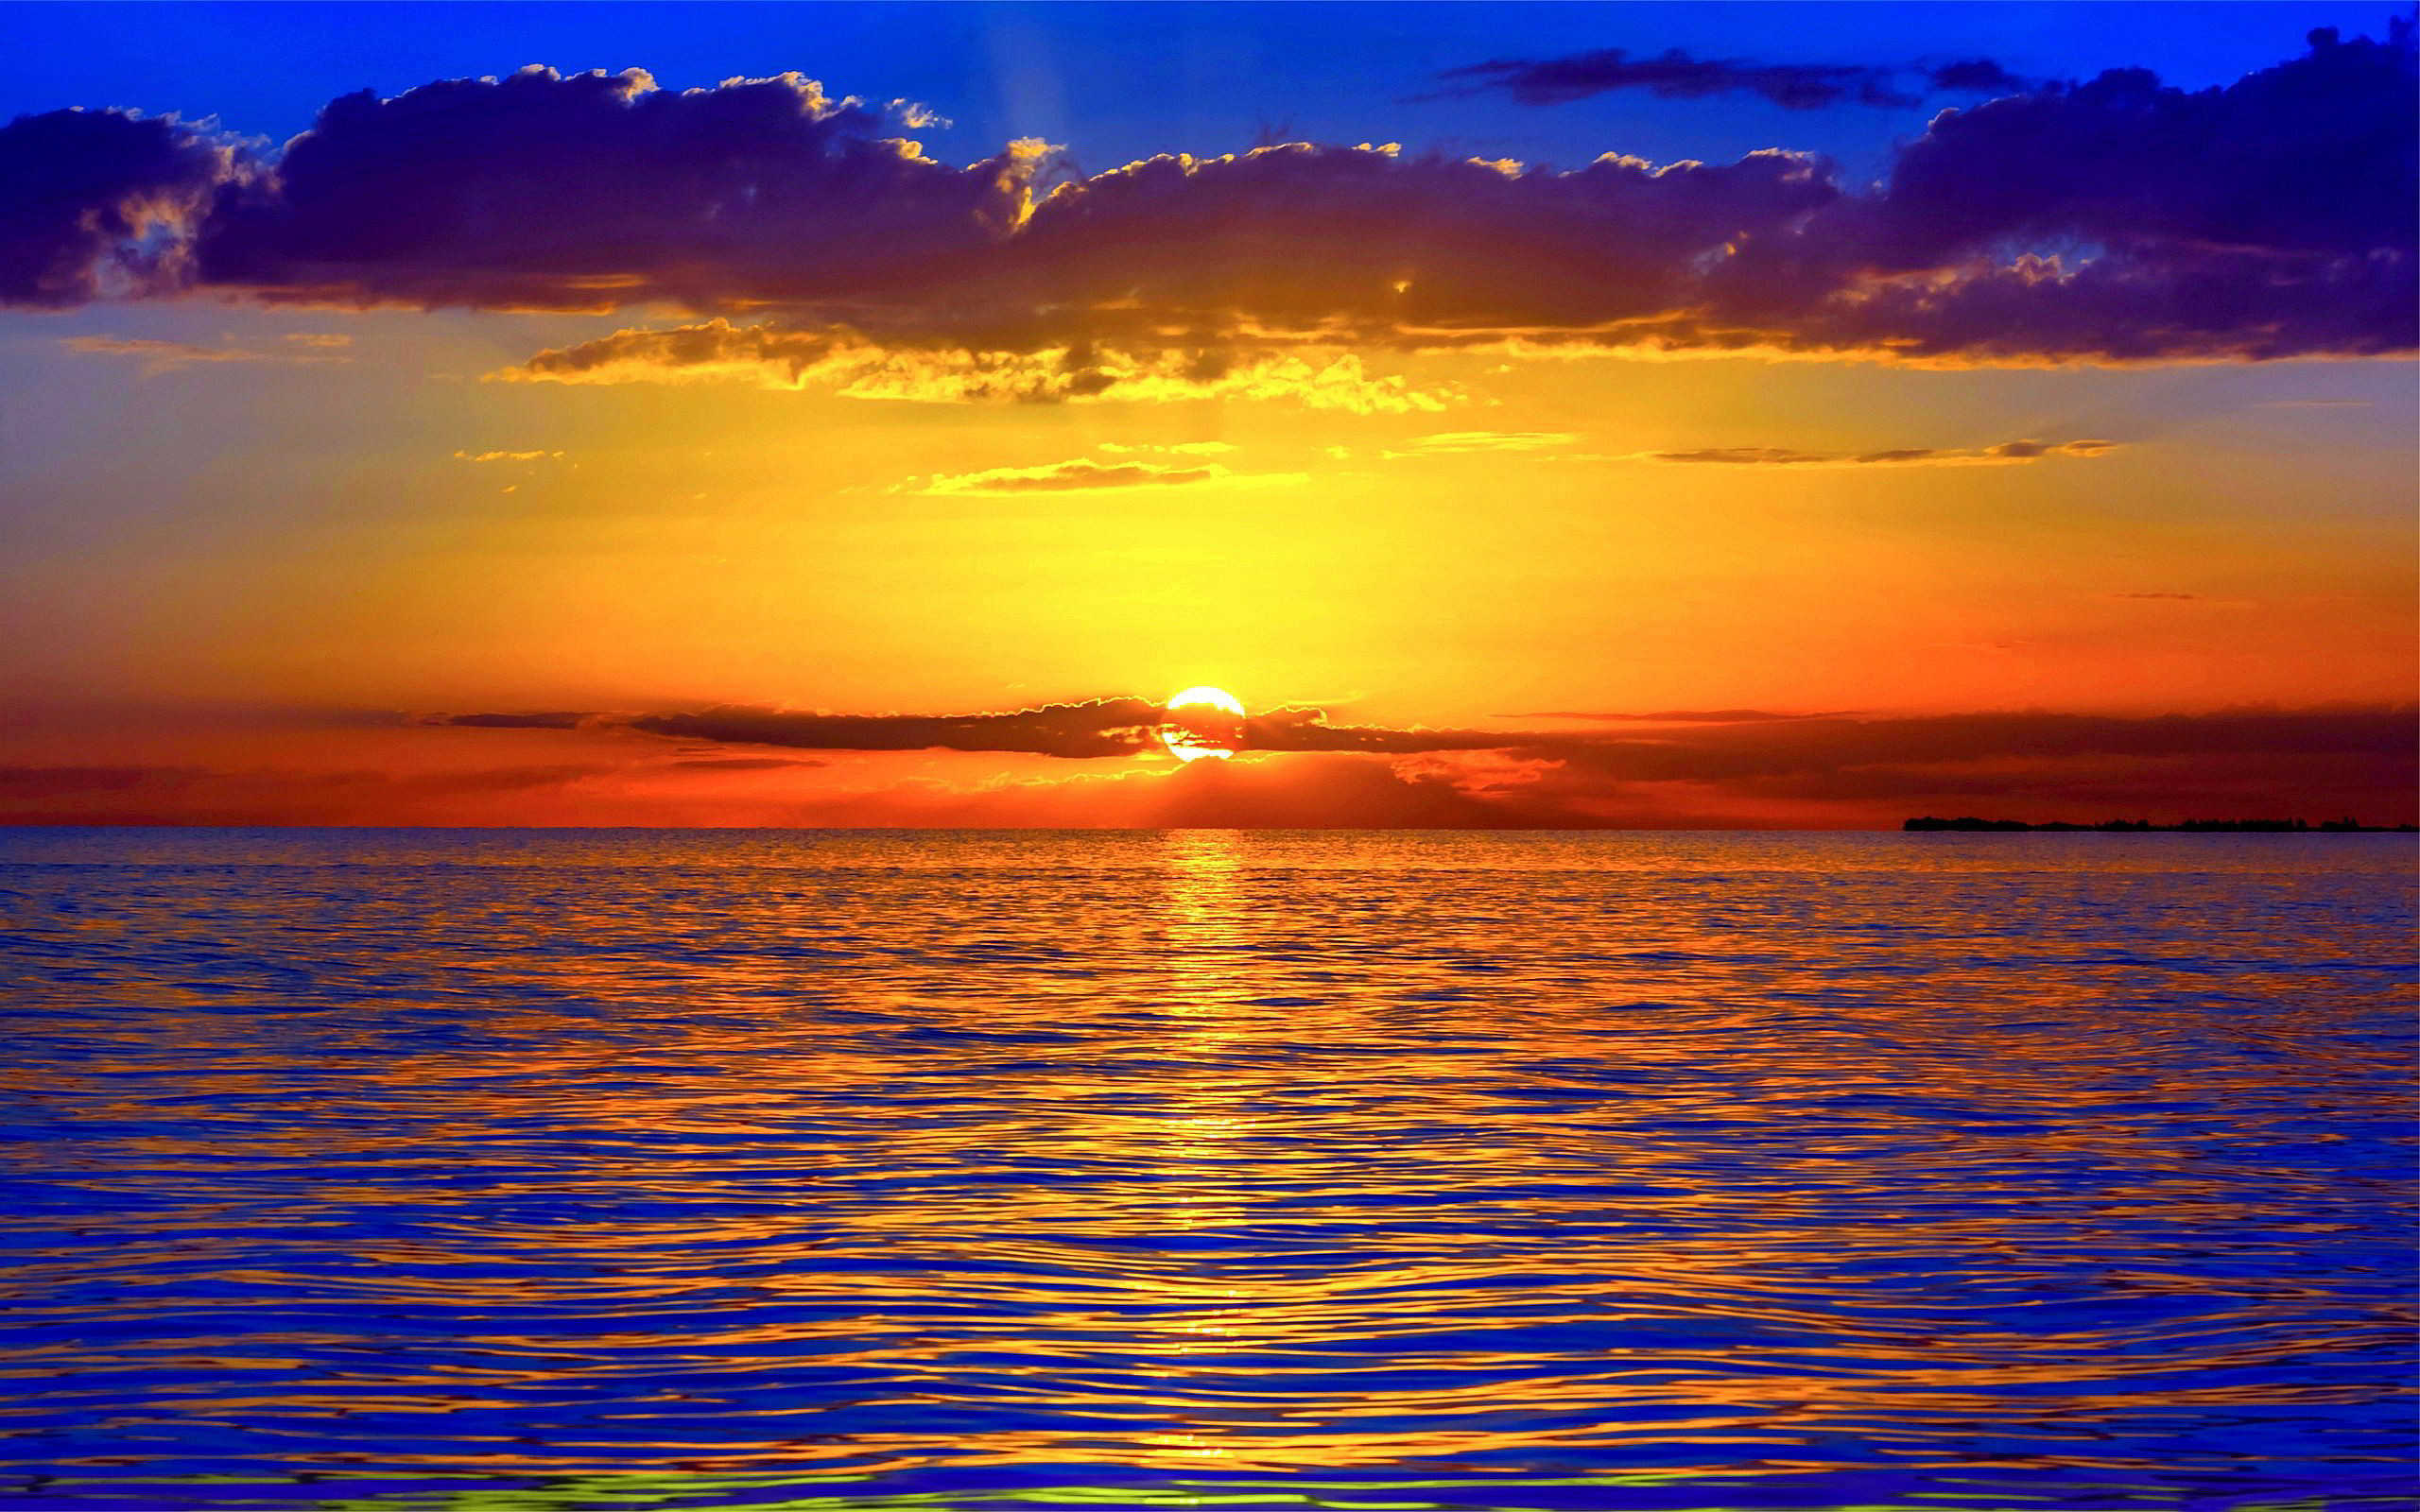 Only the best free ocean sunsets wallpapers you can find online! Ocean  sunsets wallpapers and background images for desktop, iPhone, Android and  any screen …